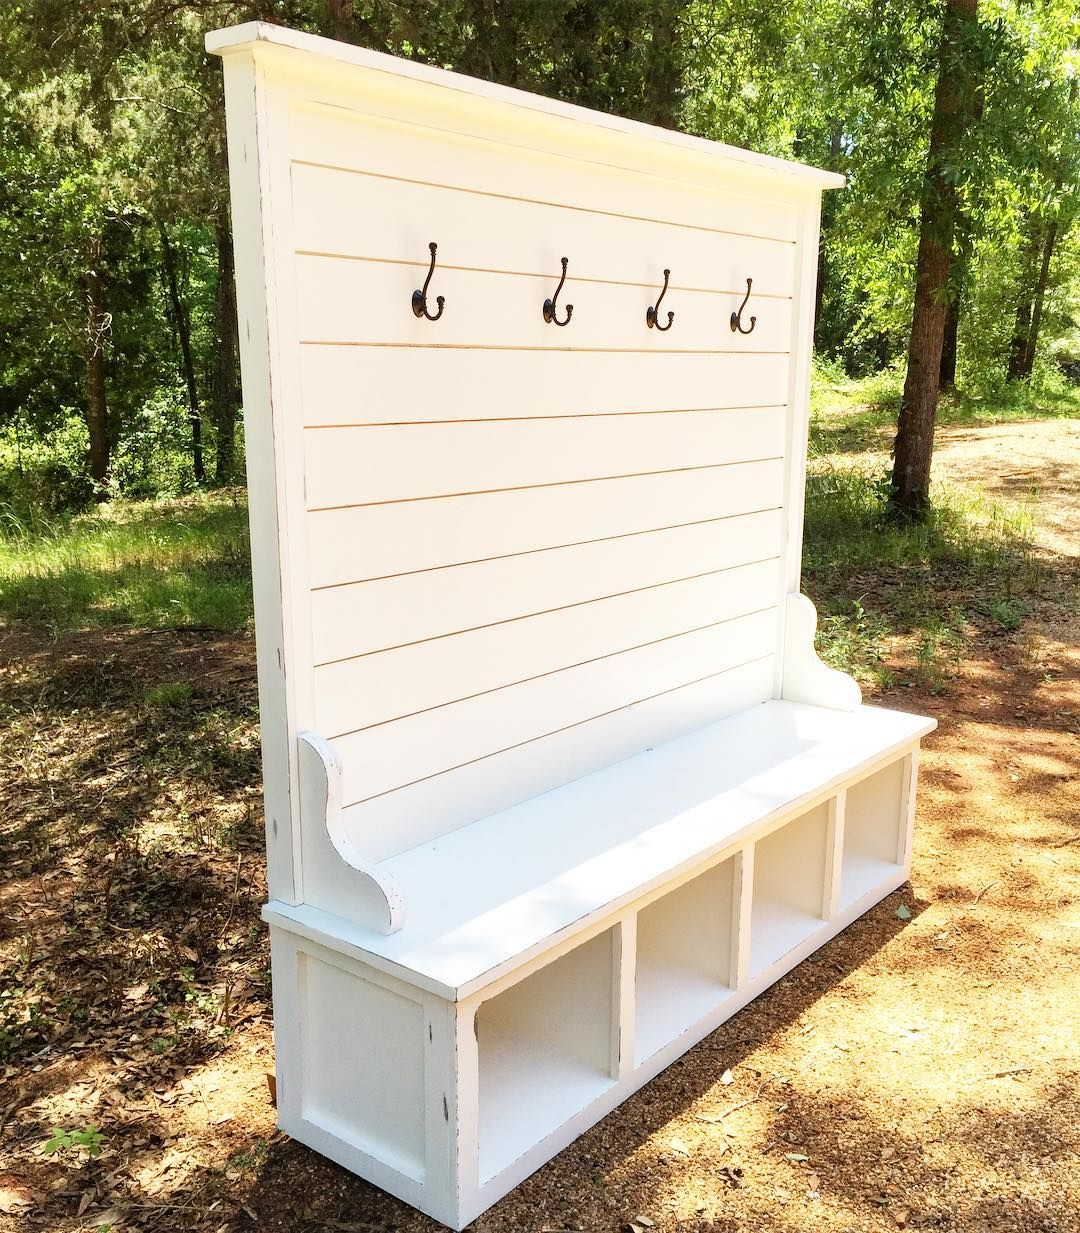 Mudroom Furniture Storage Bench : Woodworking bench pinterest entryway cabinet mudroom